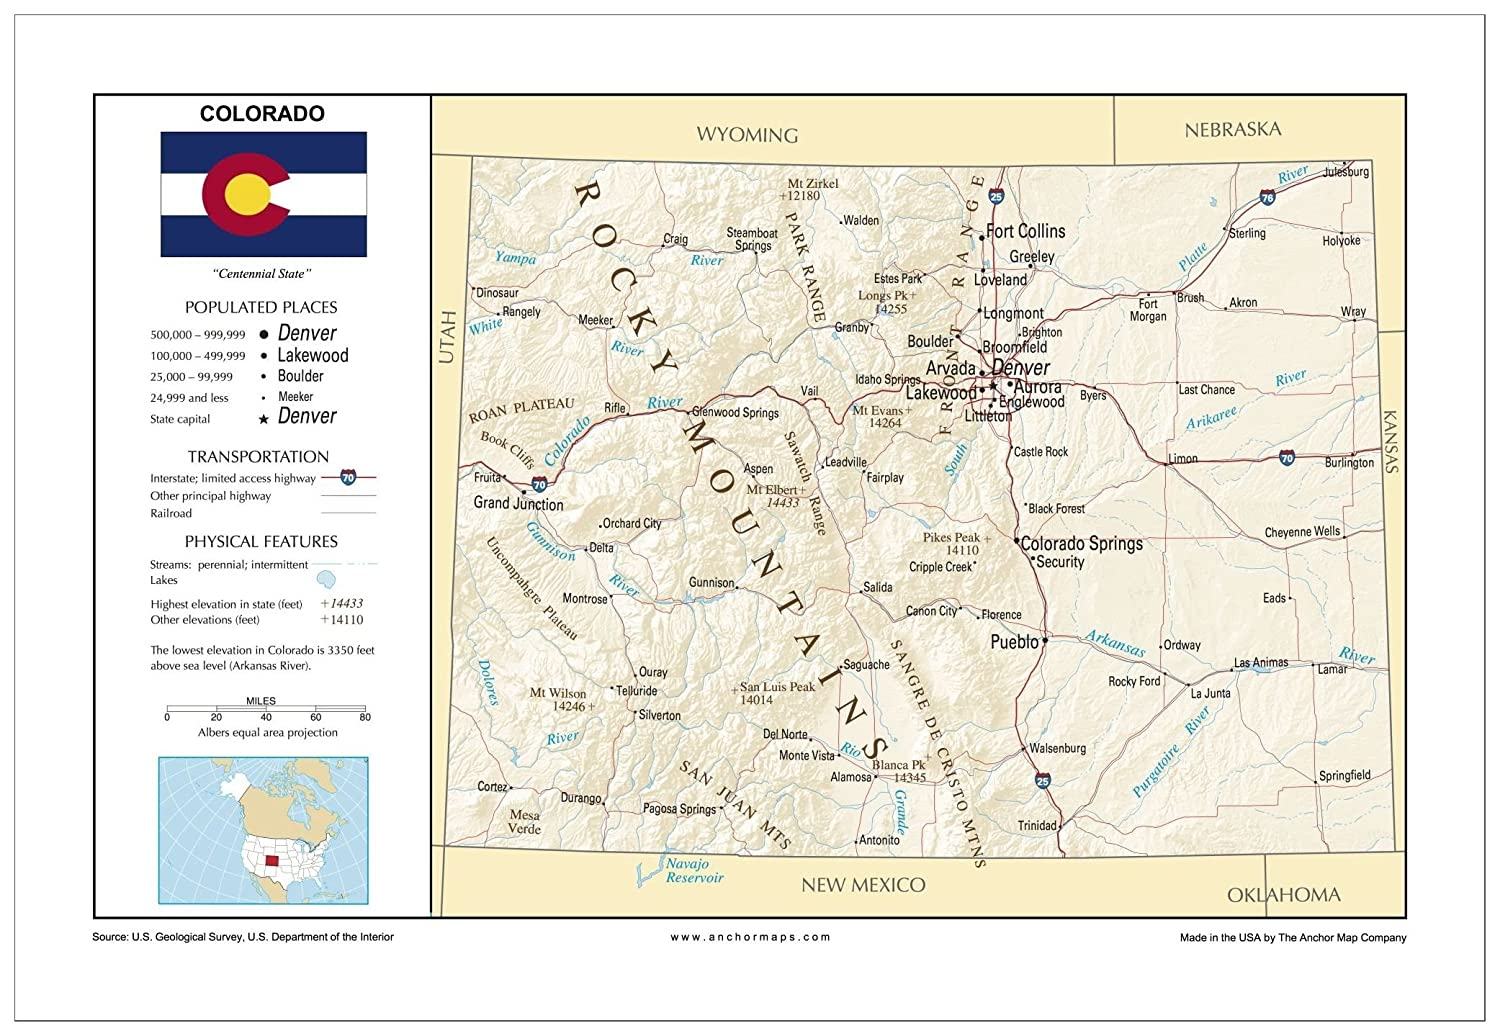 13x19 Colorado General Reference Wall Map - Anchor Maps USA Foundational on i 70 vail map, i 70 eisenhower tunnel map, i 70 ohio map, i-70 kansas map, i 70 pennsylvania map, i-70 corridor map, i-70 mile marker map, interstate 70 map, i-70 route map, i 70 utah map, i 70 missouri map, i 70 indiana map, i 70 indianapolis map, i-70 and airport map, route 70 colorado map, quezon province philippines map, i 70 illinois map, i 70 columbus map, i-70 floyd hill map,